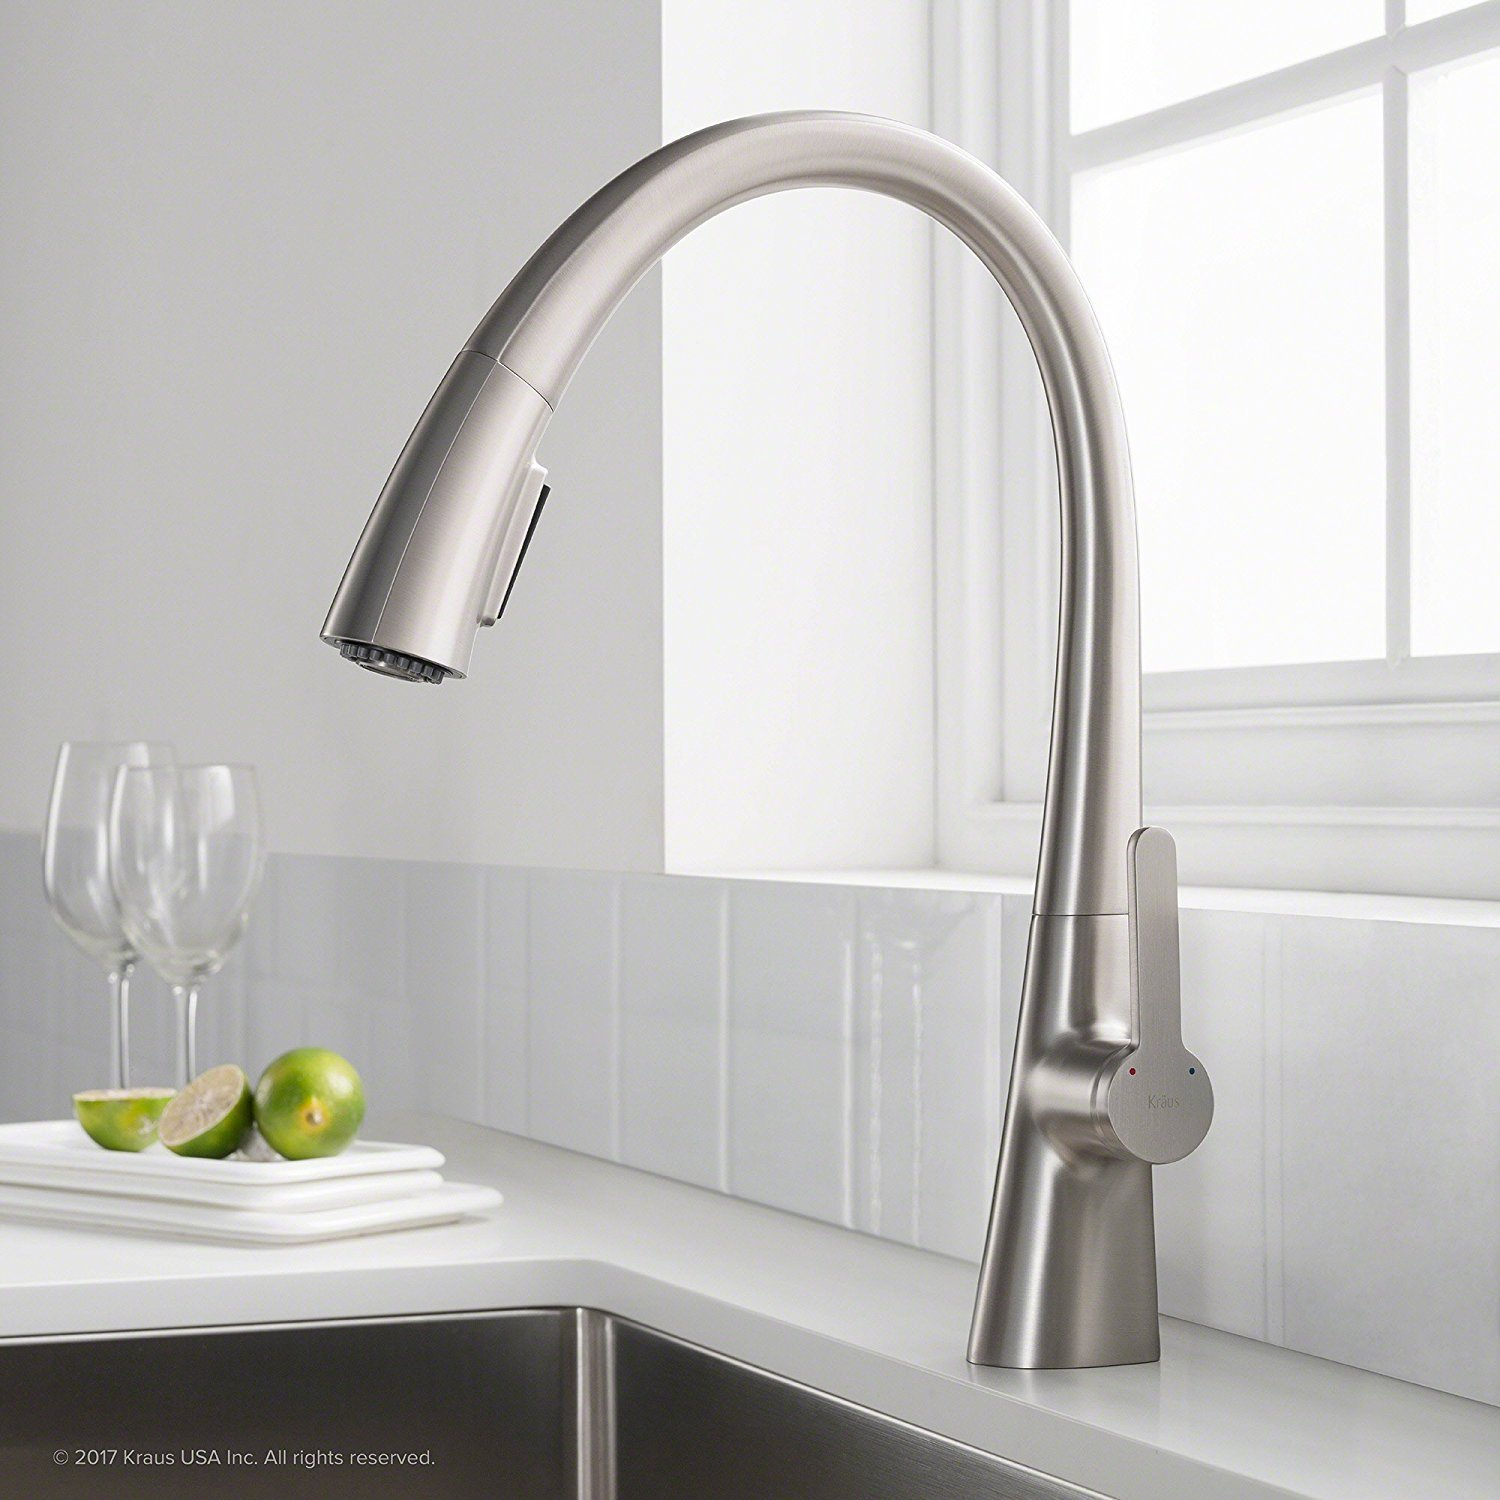 KRAUS Nolen Spot Free Kitchen Faucet, Stainless, Pull Down, Single handle in all-Brite Steel Finish KPF-1673SFS